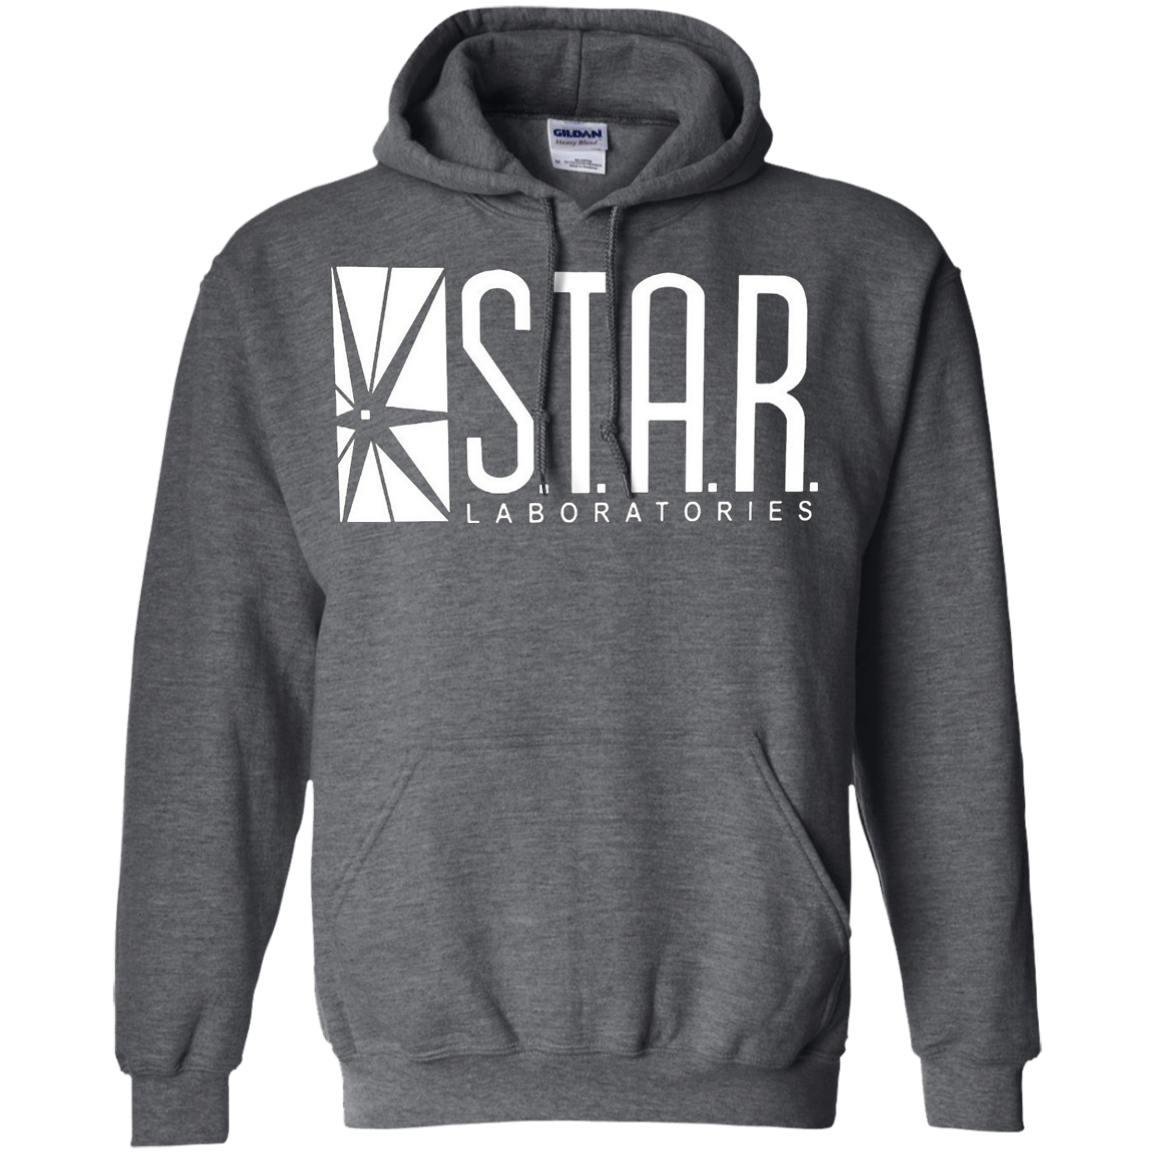 OGRINAL SAMPLE - STAR Laboratories S.T.A.R. Labs T-Shirt